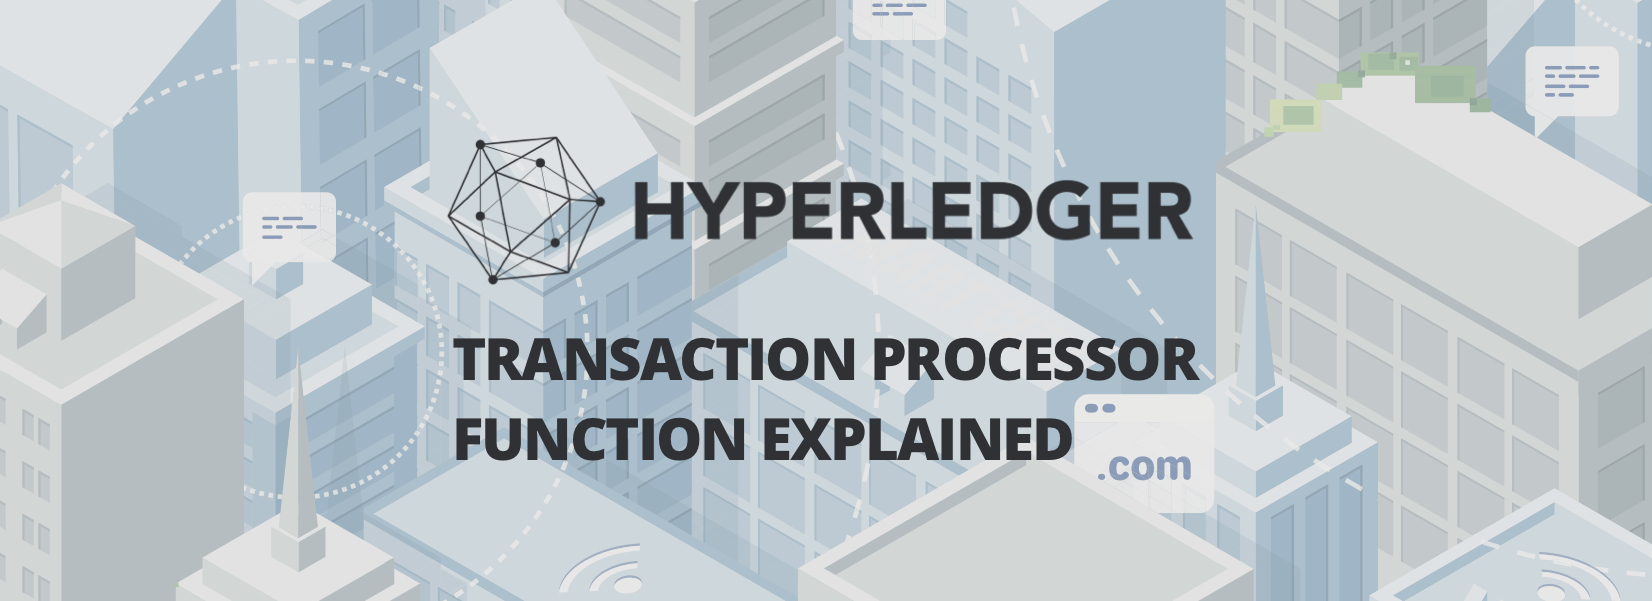 Hyperledger Composer's Transaction Processor Function explained